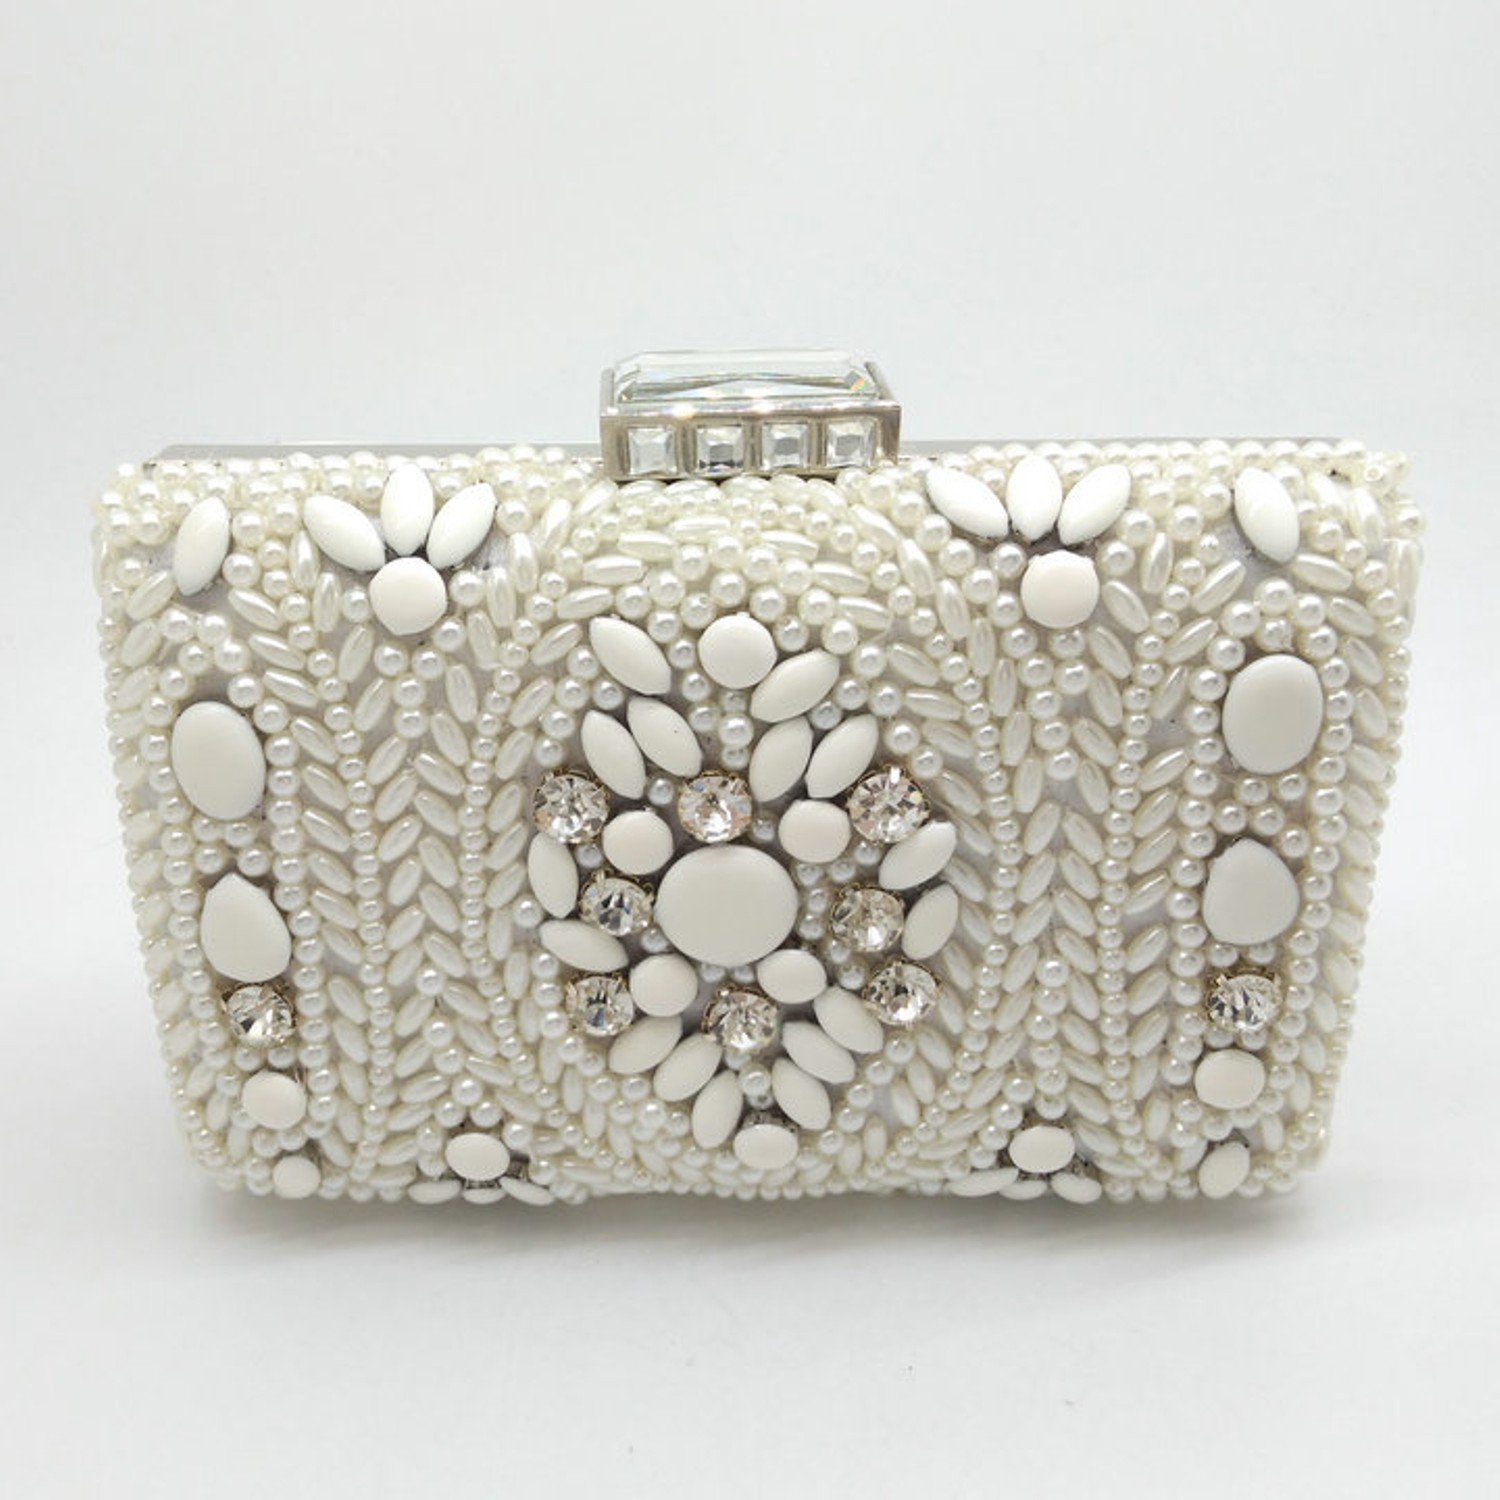 Women's White Pearl Evening Clutch in Metal with White Beads